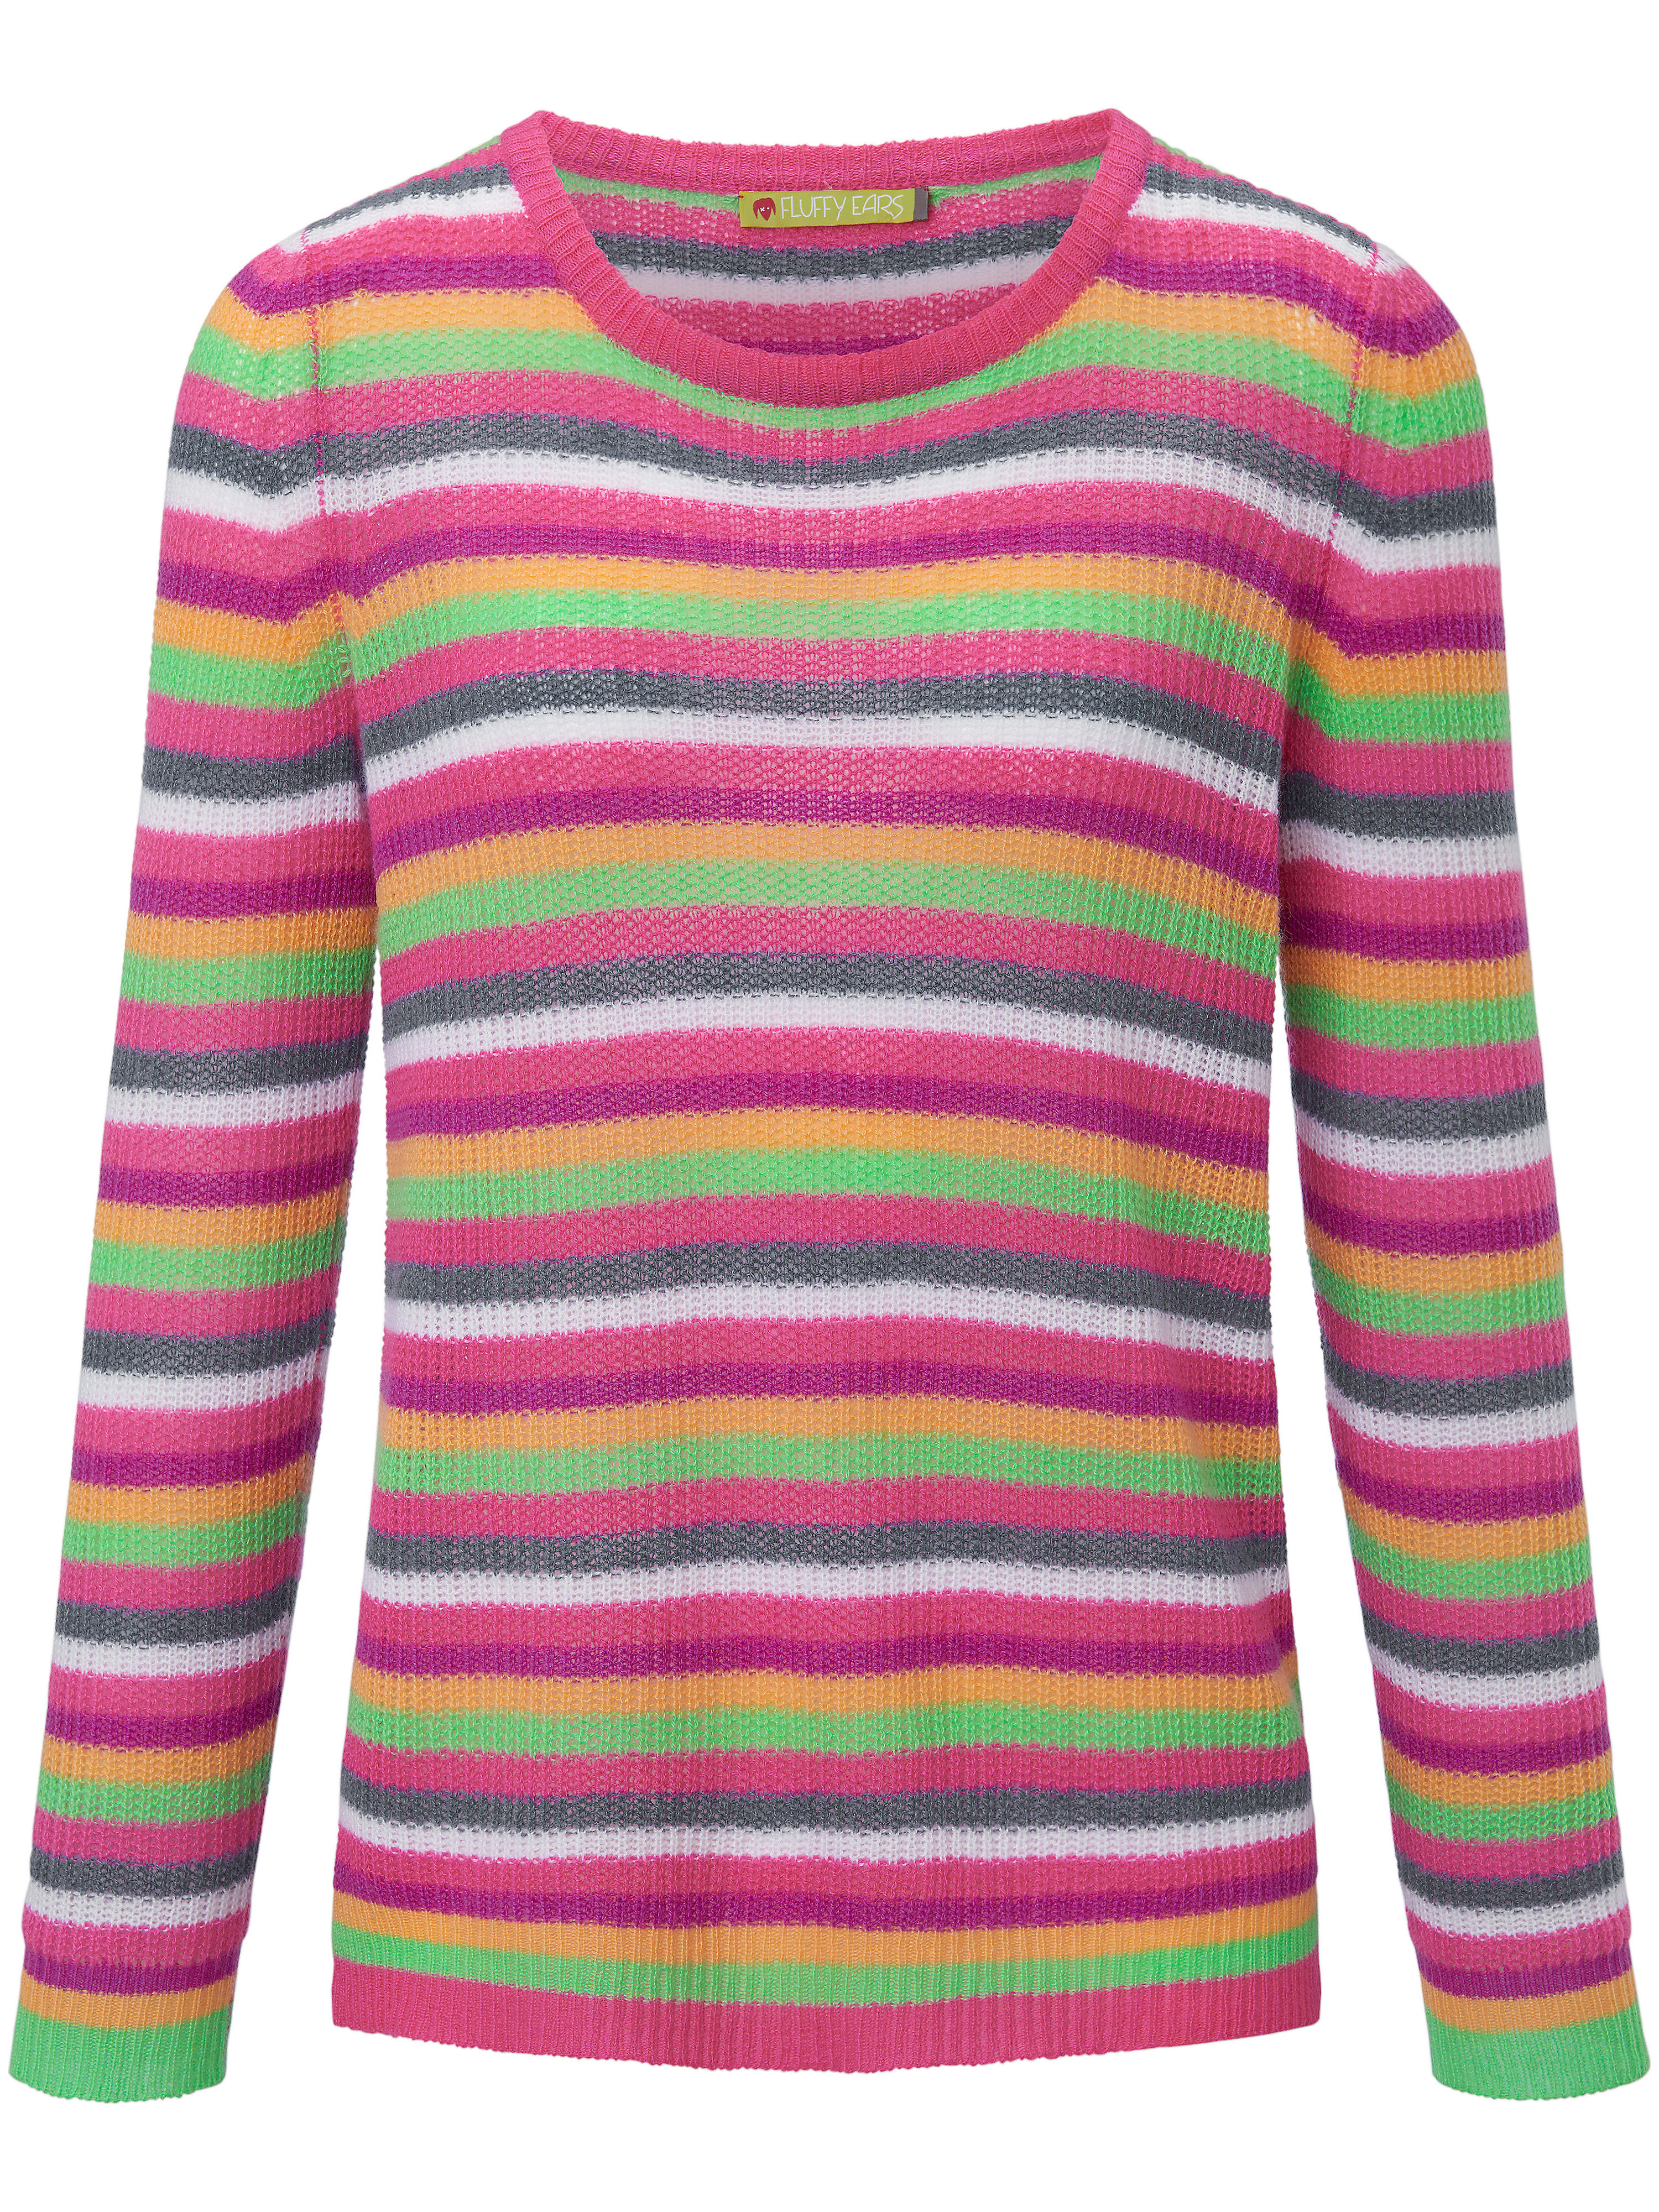 Le pull 100% cachemire  FLUFFY EARS multicolore taille 38